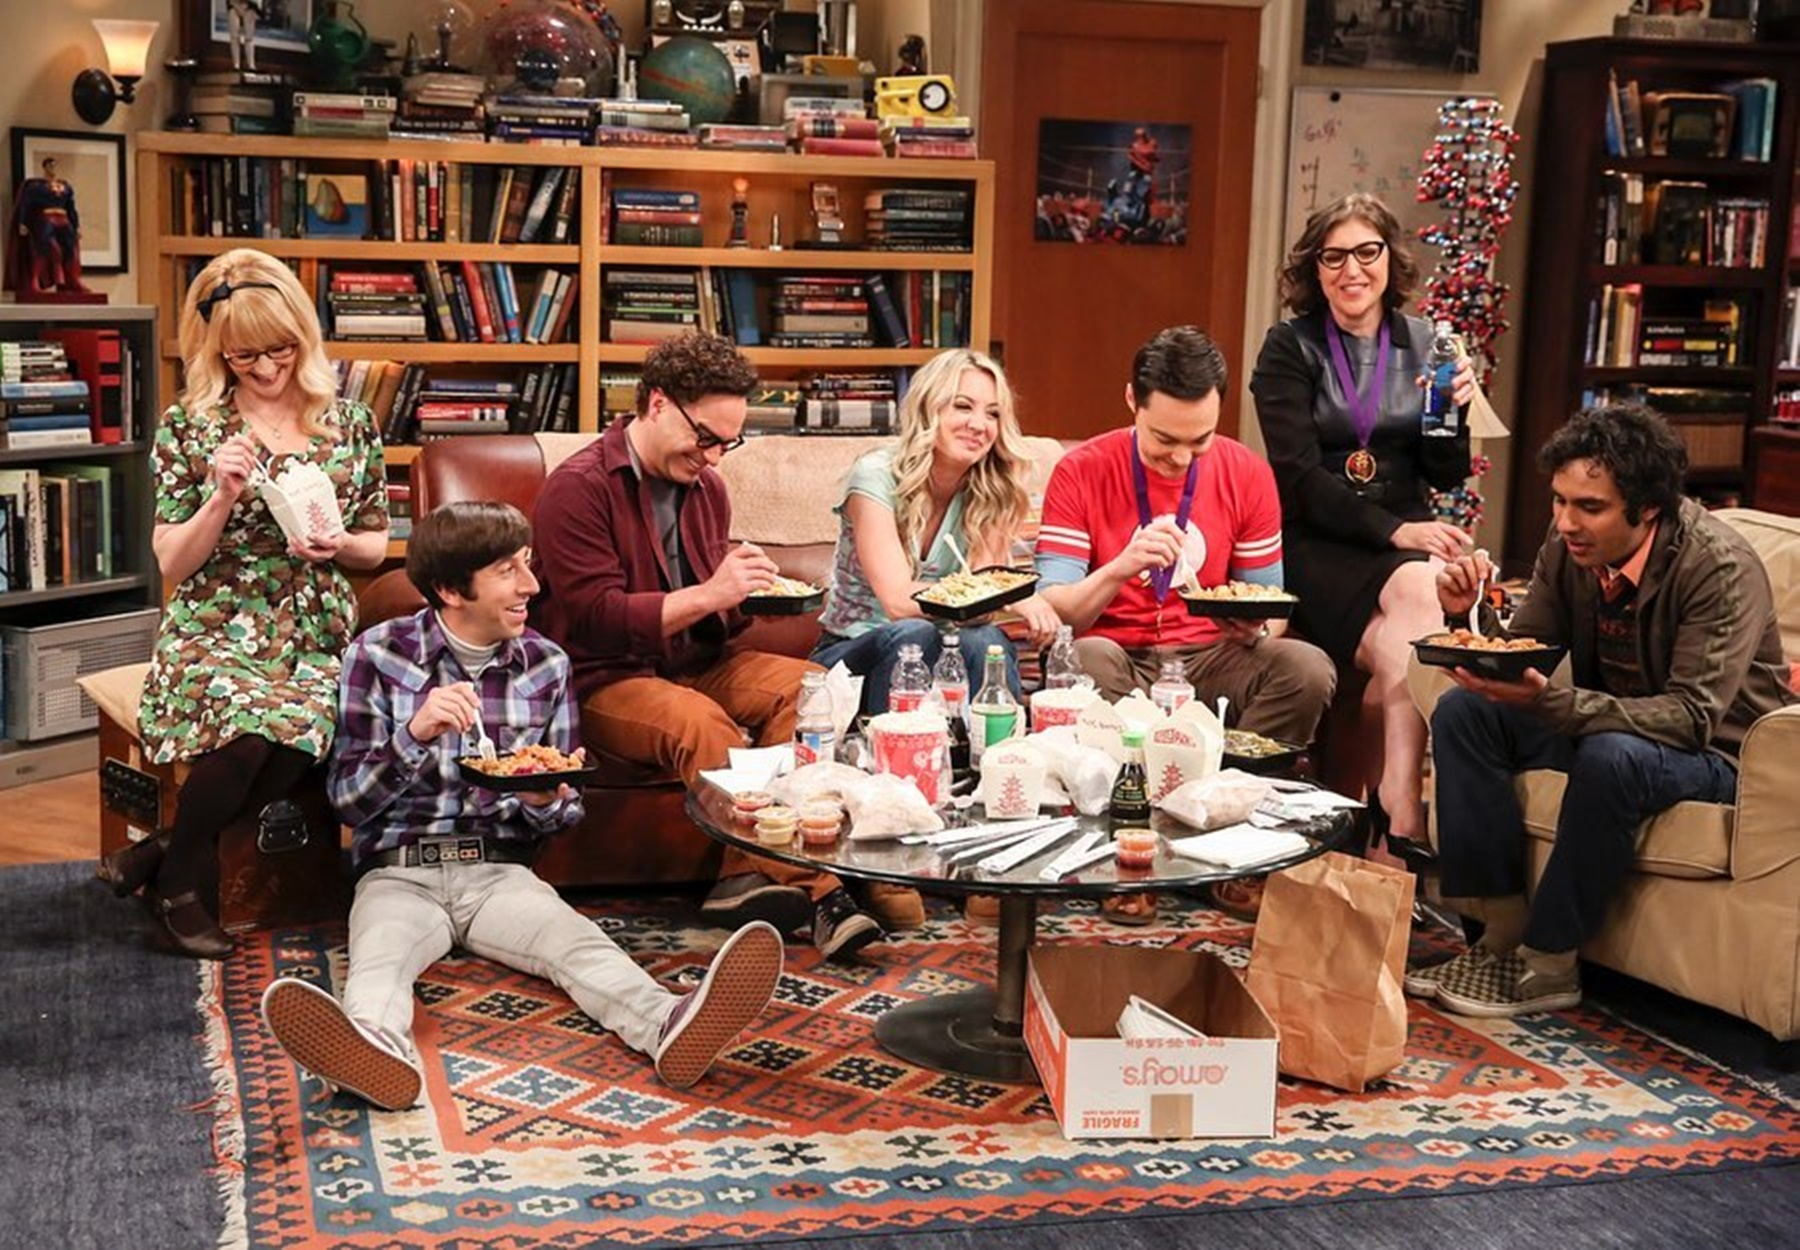 kaley-cuoco-johnny-galecki-jim-parsons-and-the-other-the-big-bang-theory-stars-changed-the-lives-of-some-fans-in-a-profound-way-as-series-finale-breaks-records